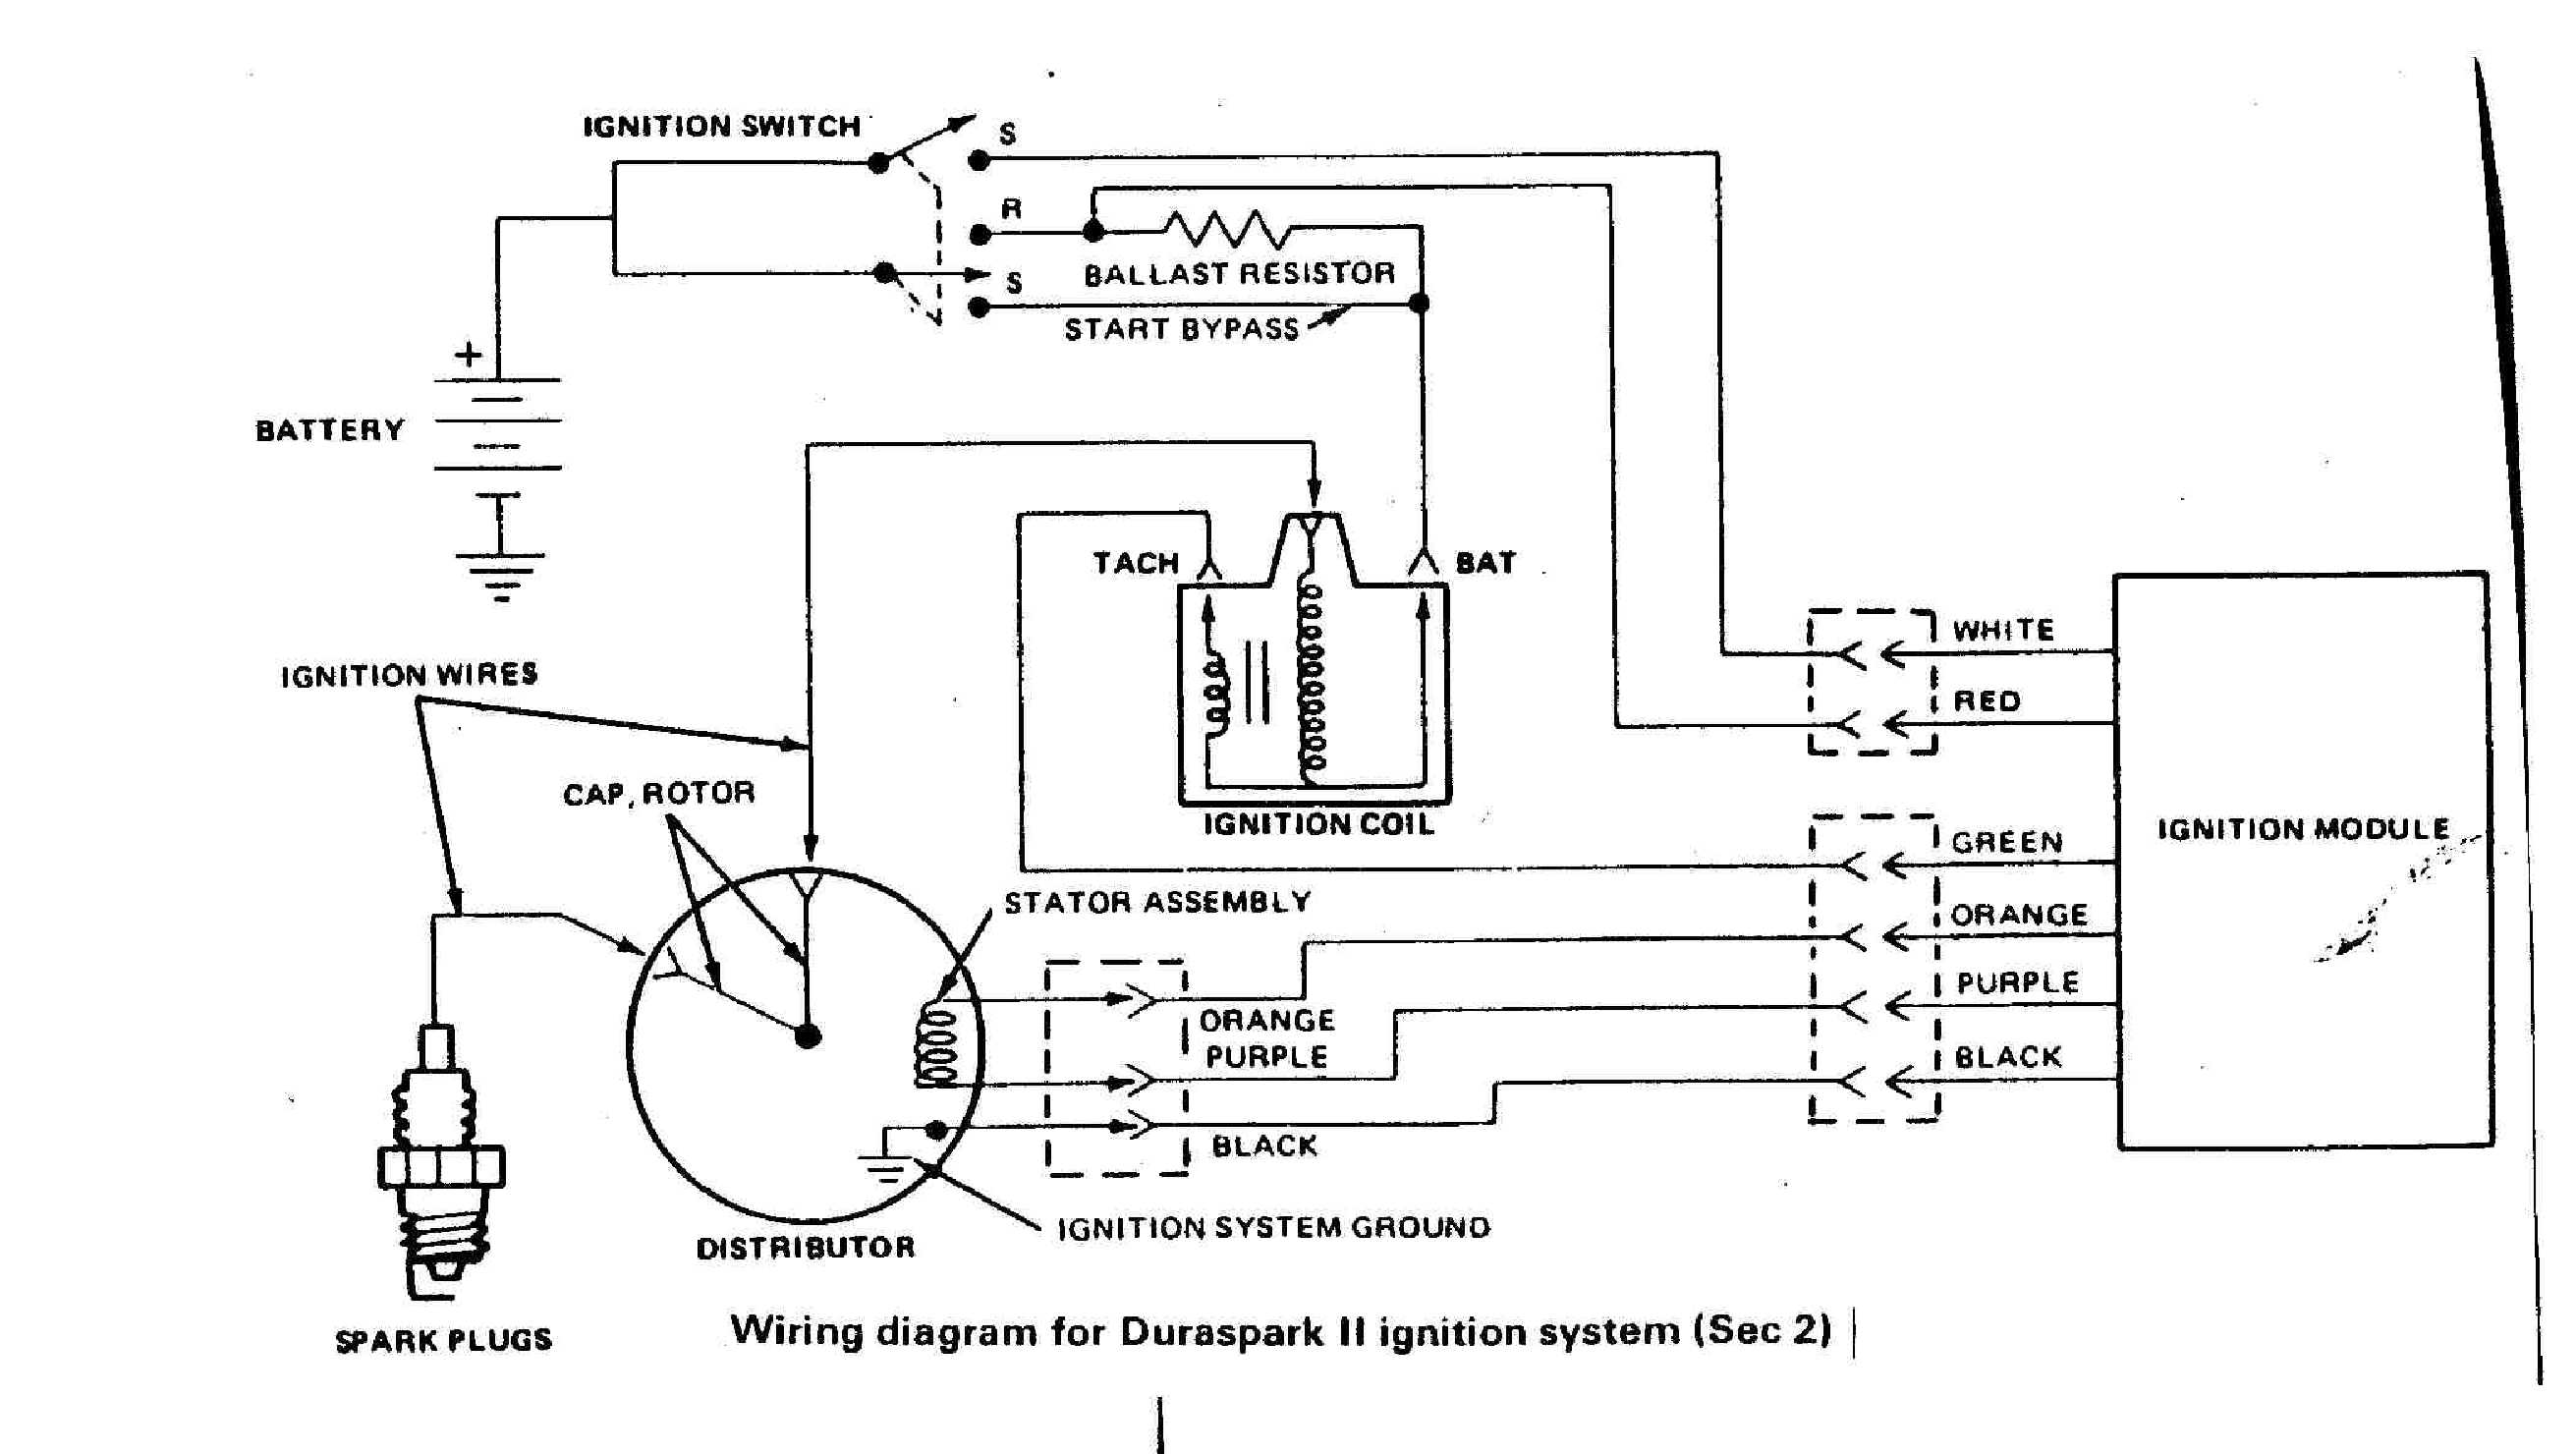 duraspark ignition switch wiring question ford muscle forums ford muscle bosch ignition switch wiring diagram at gsmx.co